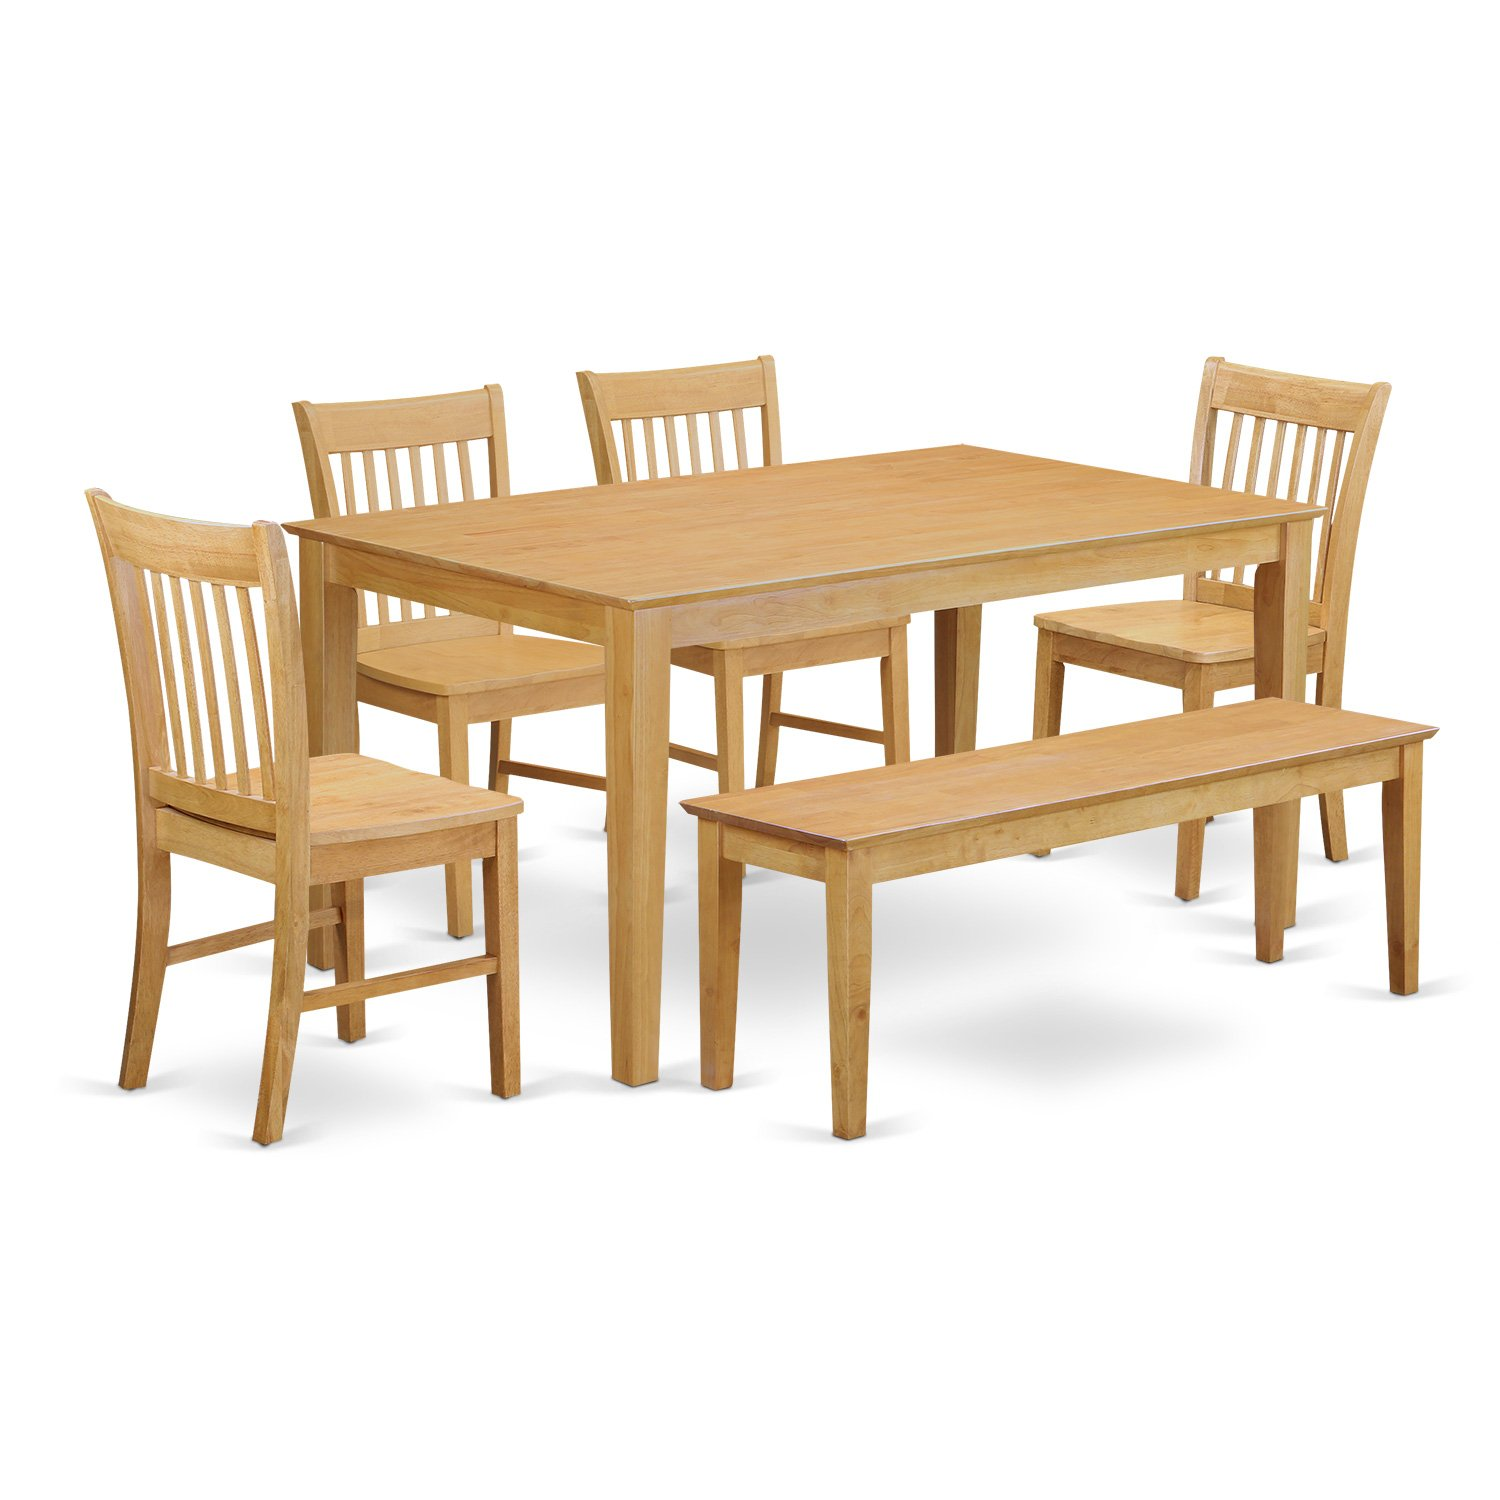 Amazon.com East West Furniture CANO6-OAK-W 6-Piece Dining Table Set Kitchen \u0026 Dining  sc 1 st  Amazon.com & Amazon.com: East West Furniture CANO6-OAK-W 6-Piece Dining Table Set ...